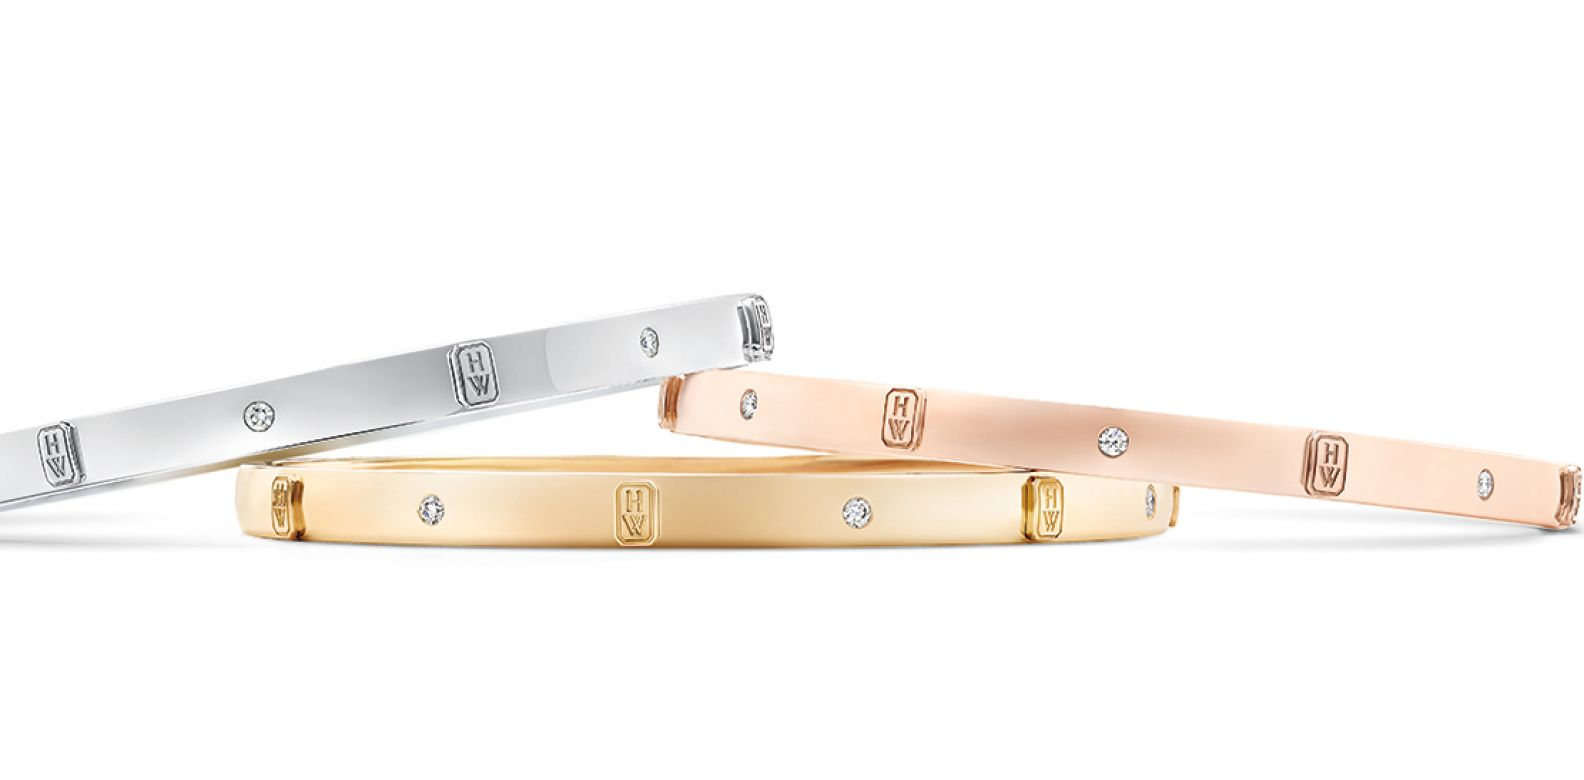 HW Logo by Harry Winston diamond bracelet in white, yellow or rose gold